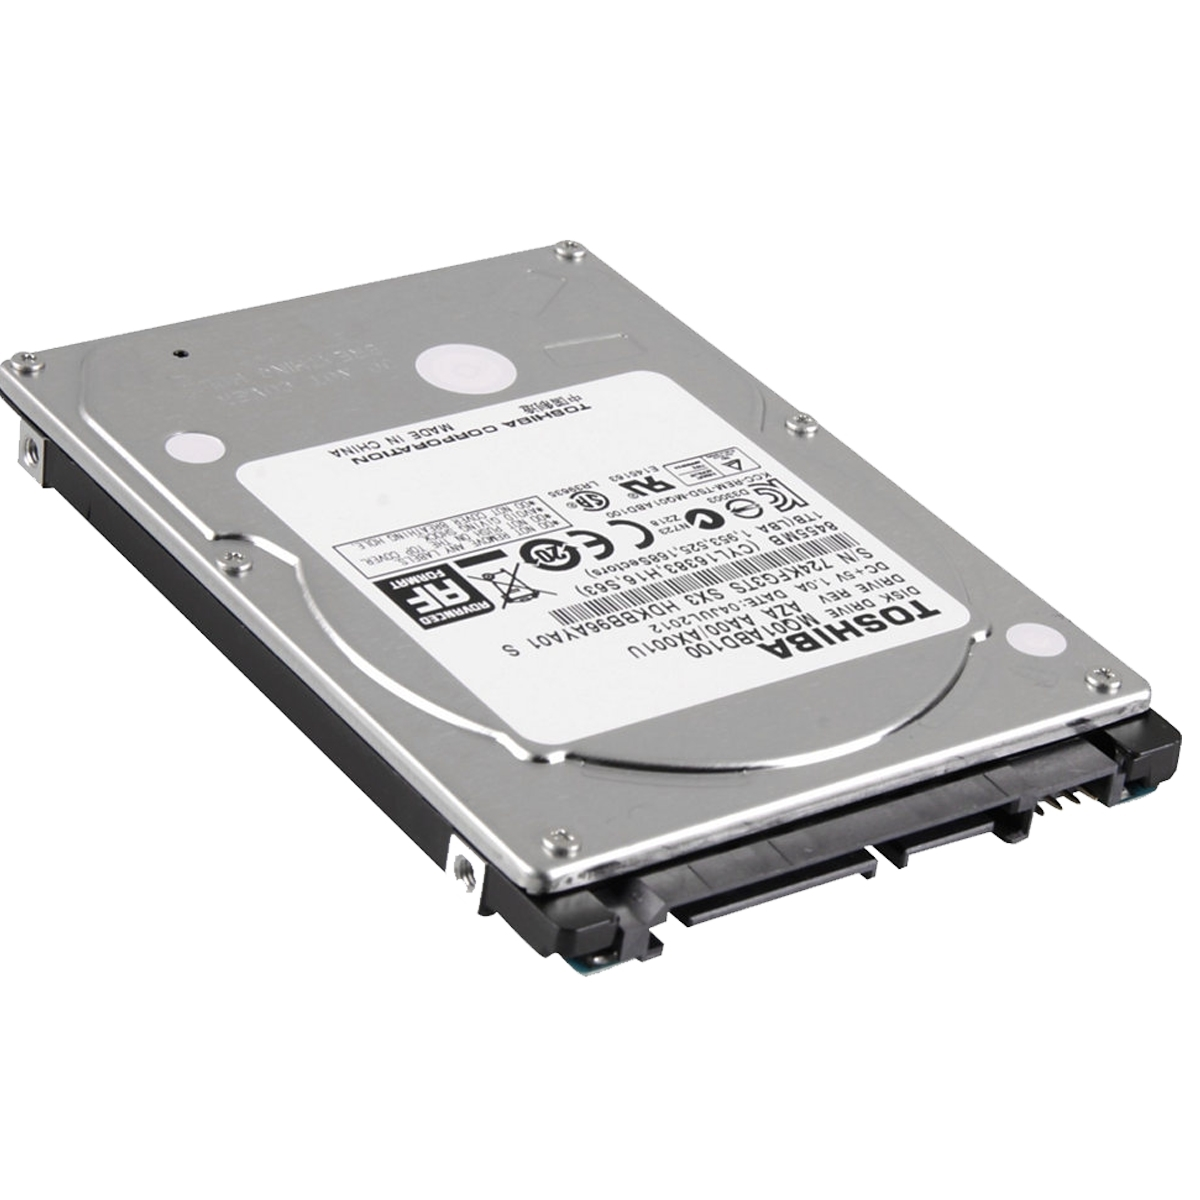 "Toshiba MQ01ABD100 1TB 5.4K RPM 2.5"""" 9.5mm SATA, Silver (Refurbished)"